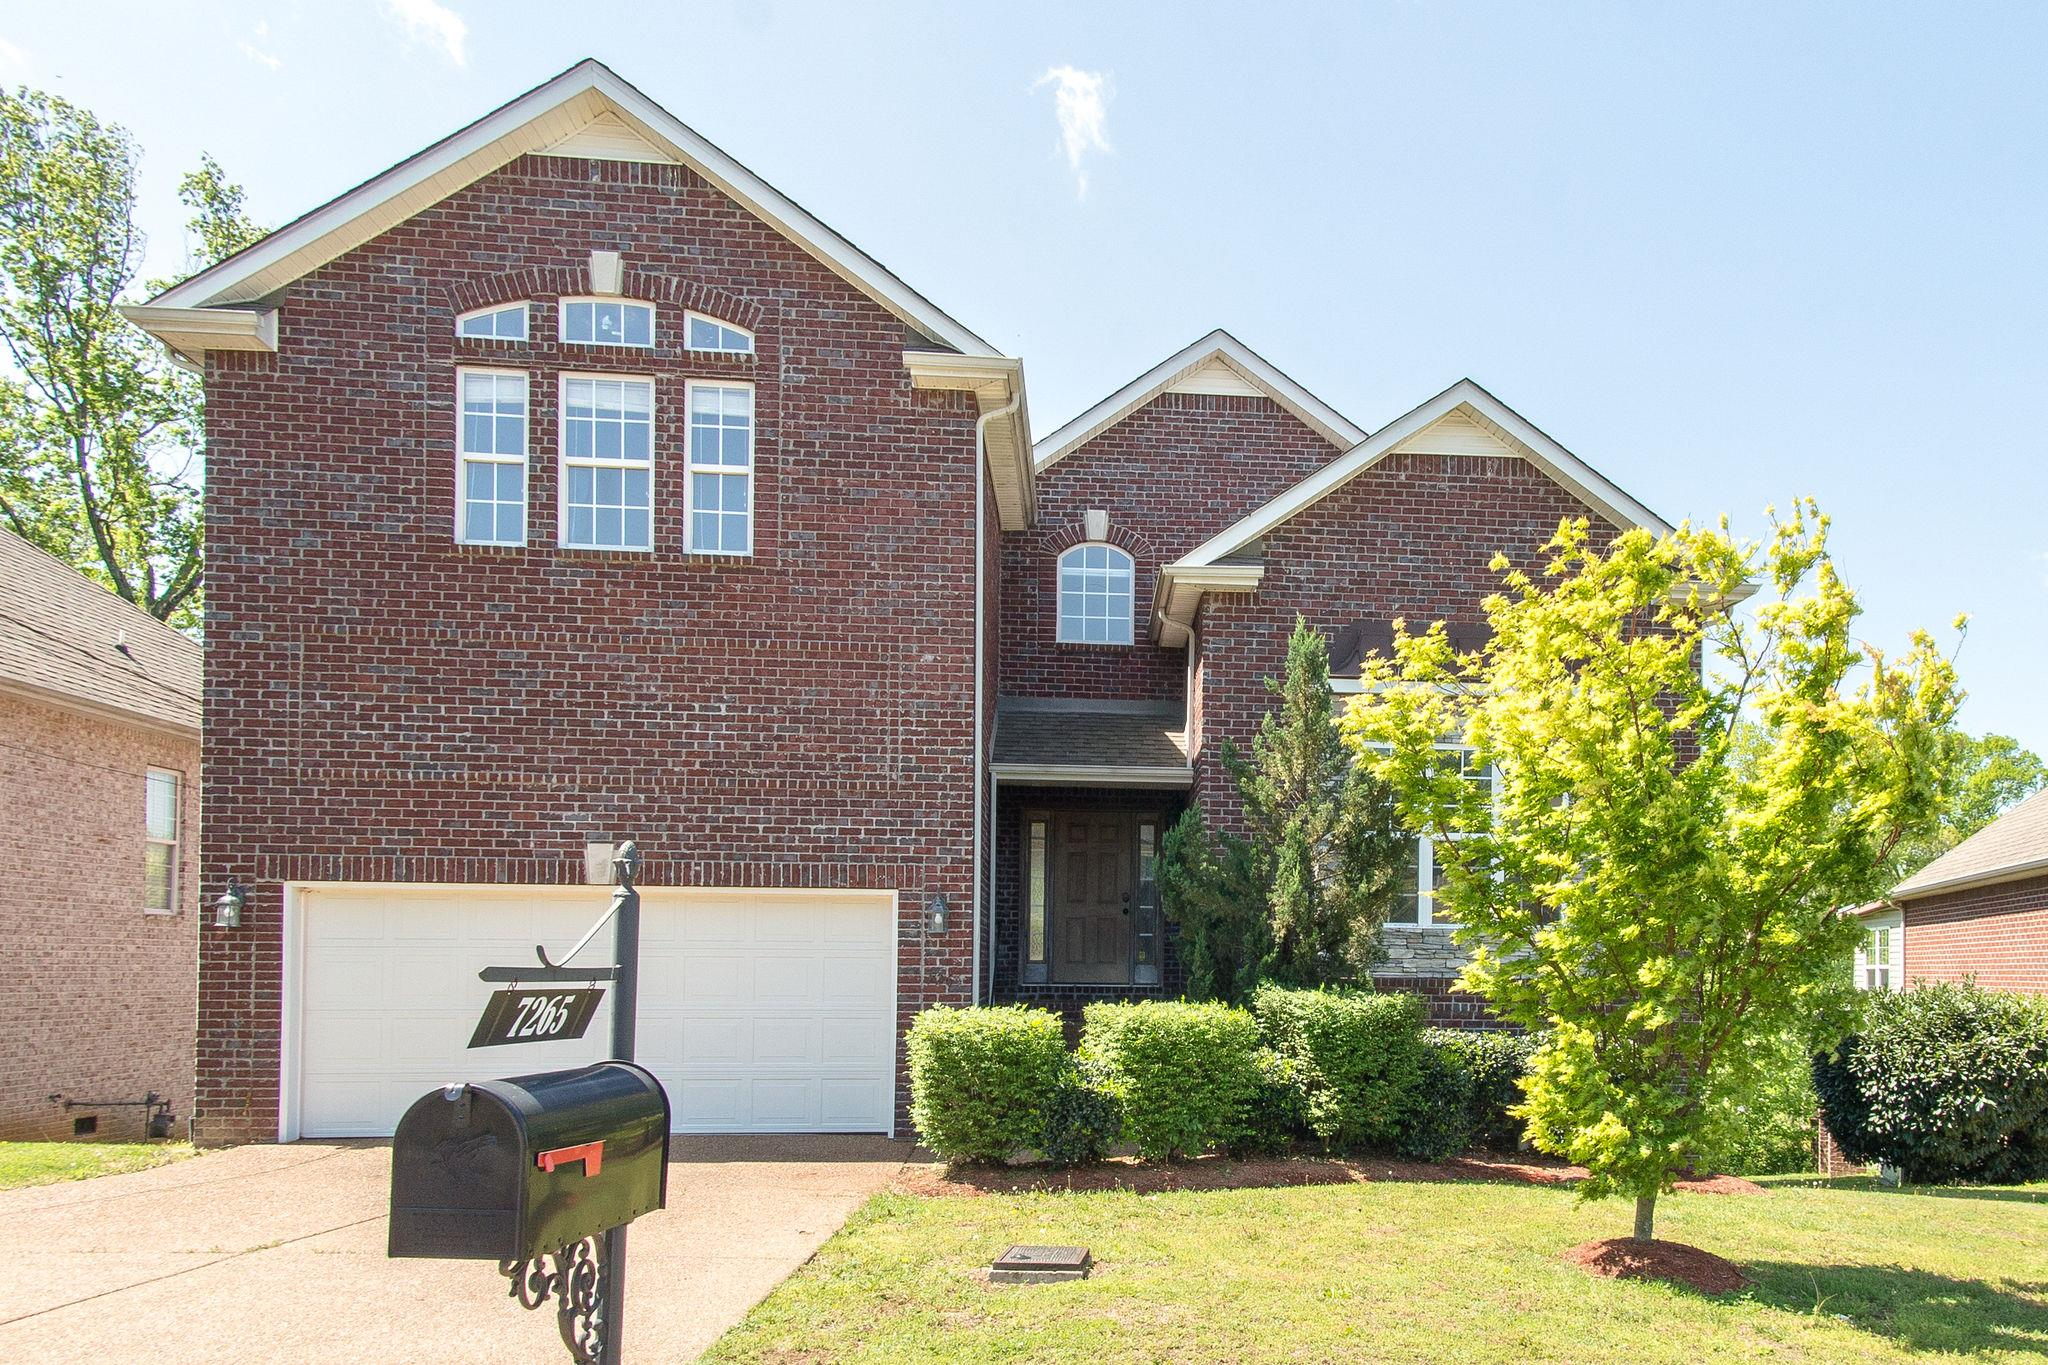 7265 Santeelah Way, Nashville-Antioch, Tennessee